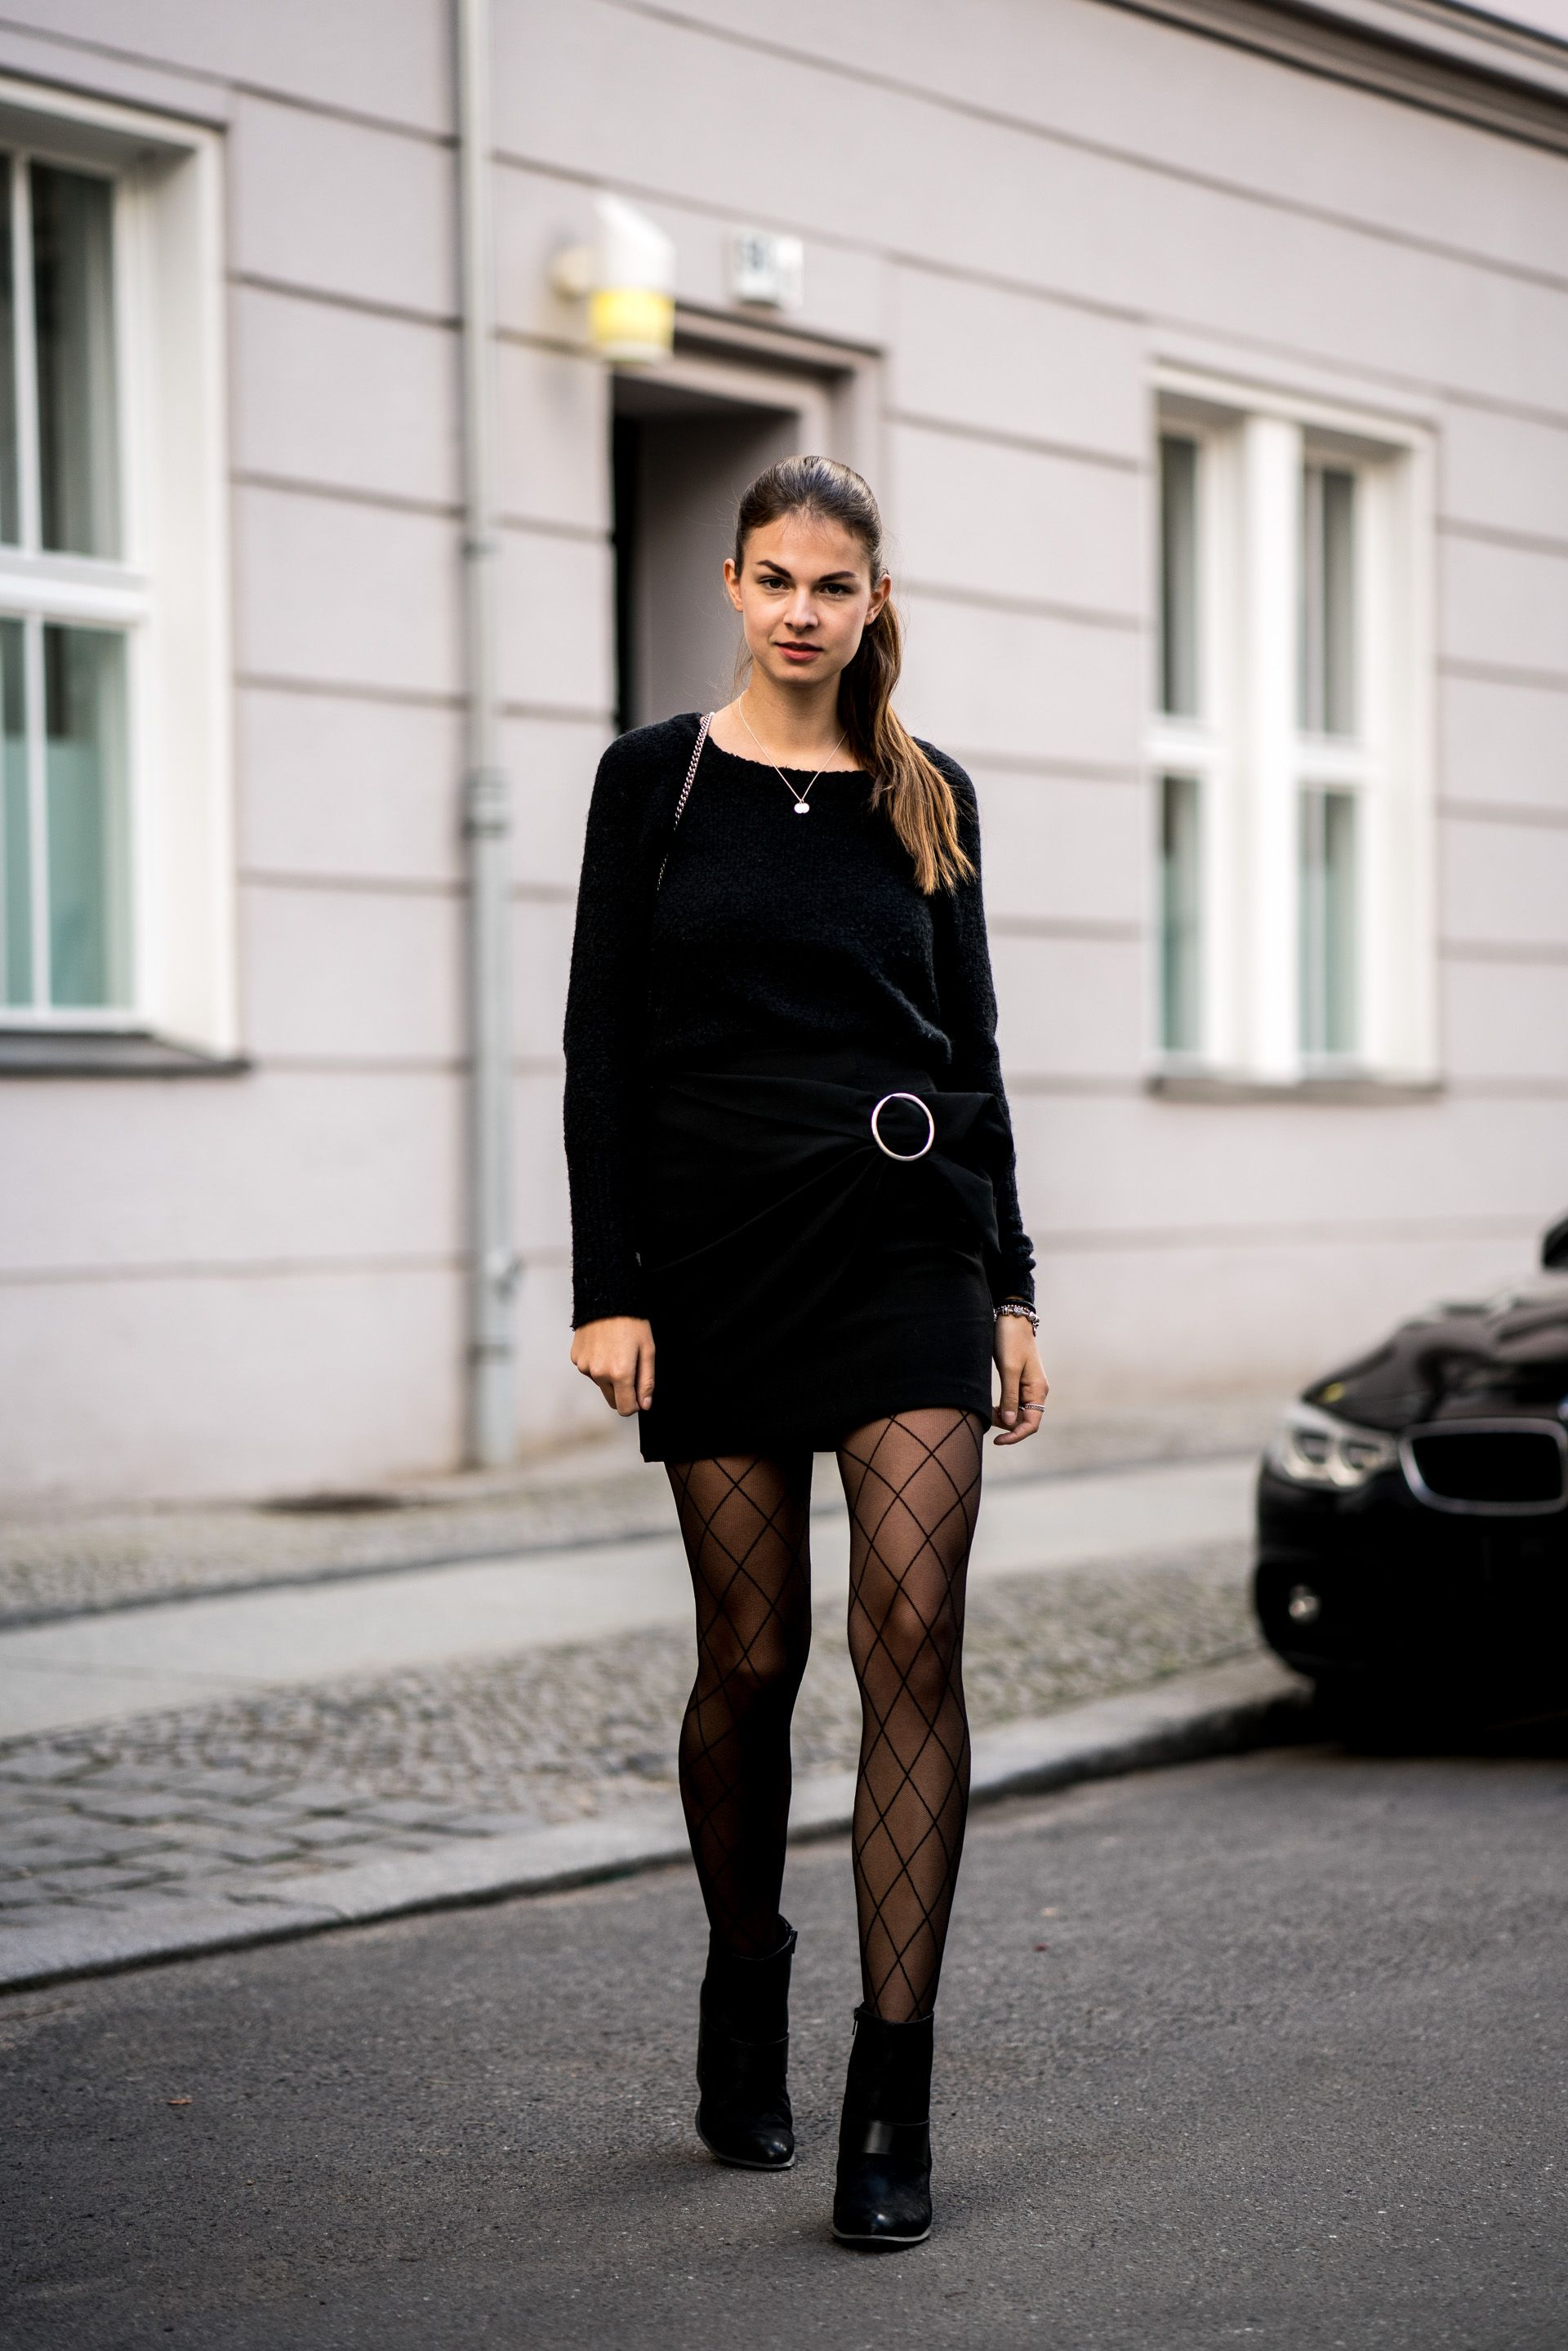 Fishnet Tights Are Still In Fashion But How To Combine It - Schwarzer Enger Rock Kombinieren